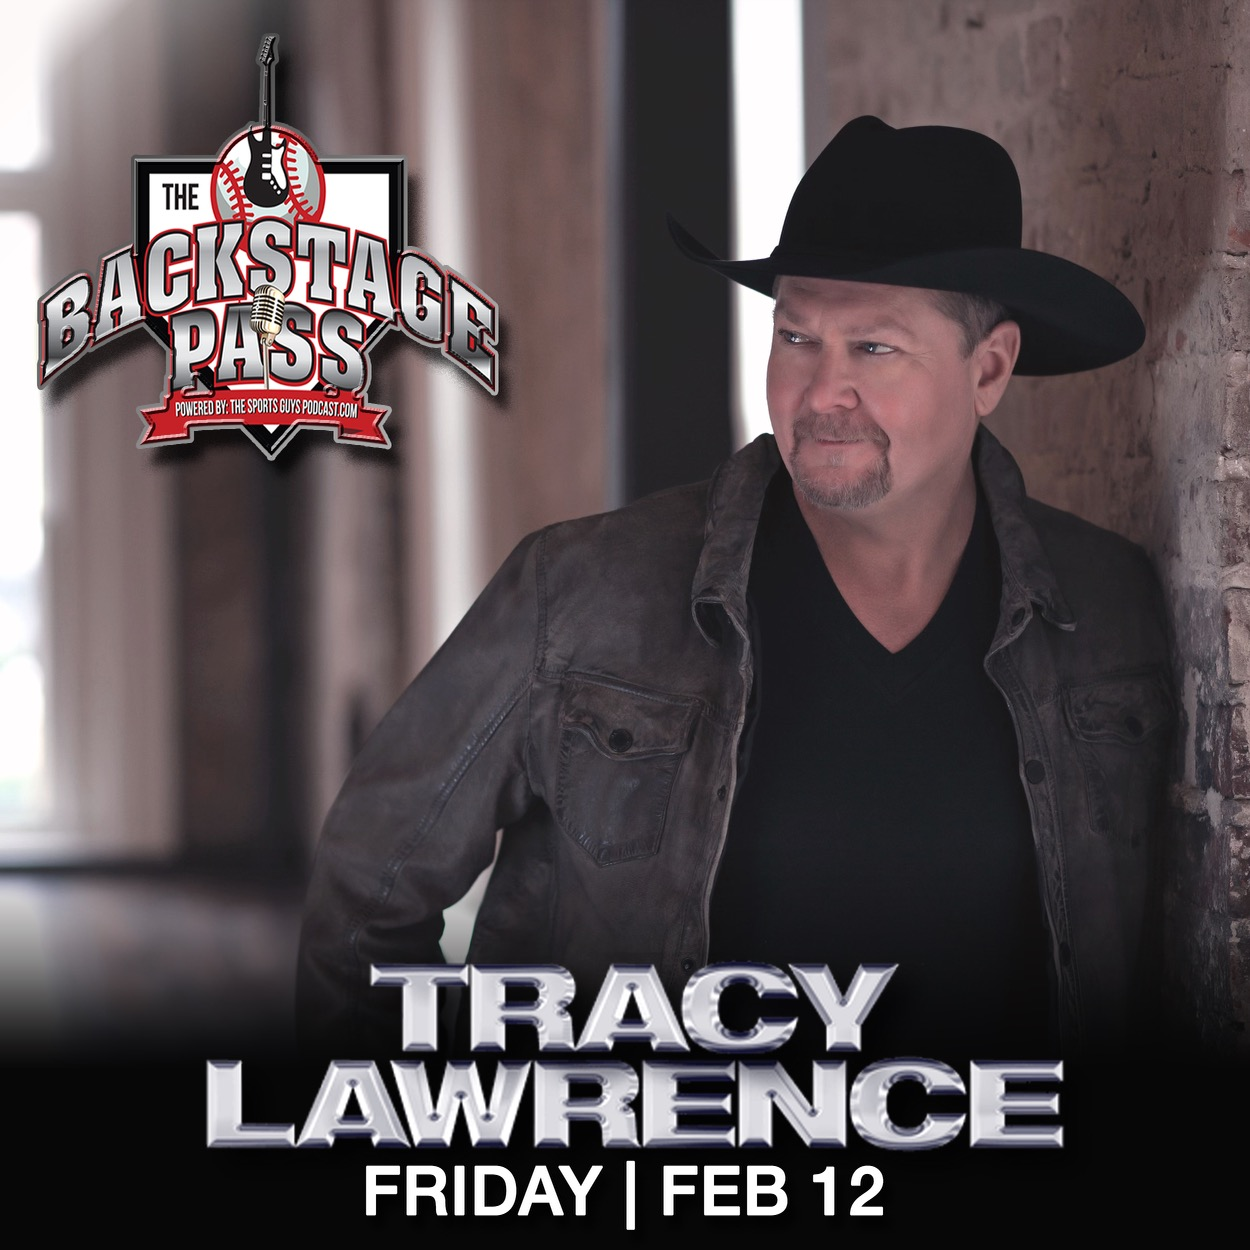 backstage_pass_tracy_lawrence